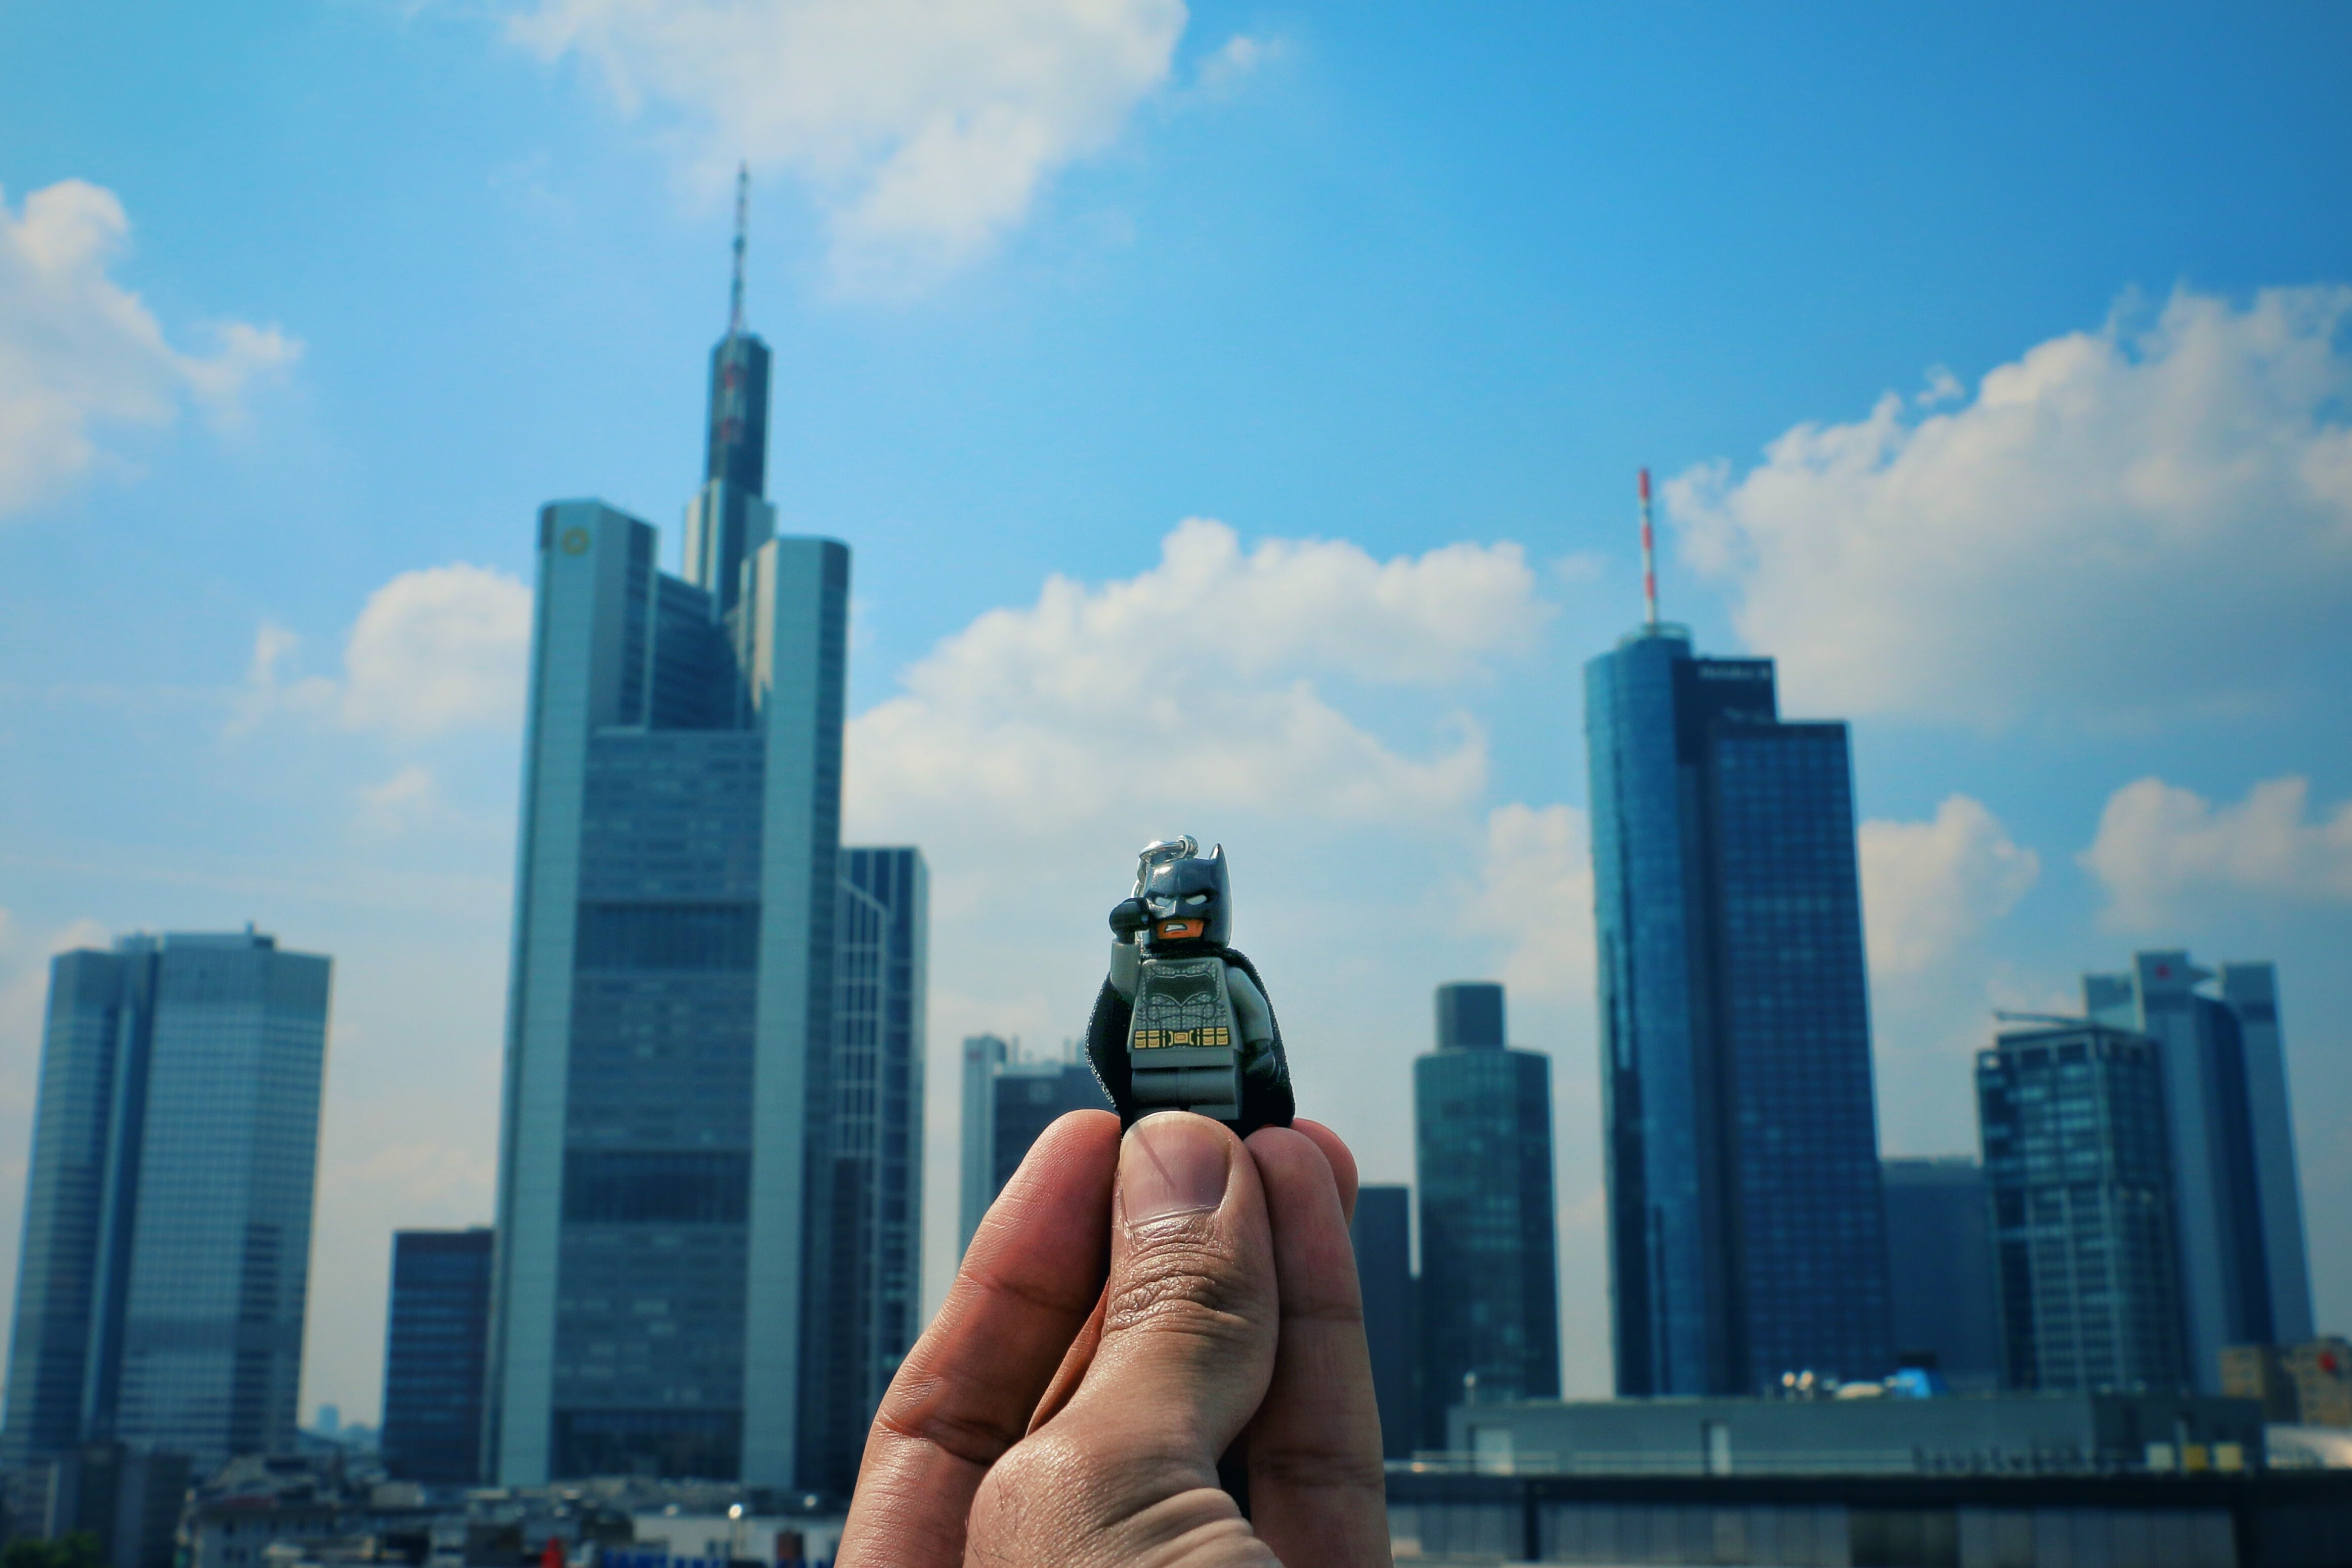 A person holding a Lego guy toy in the air with his fingers, with skyscrapers and a cloudy sky in the background.